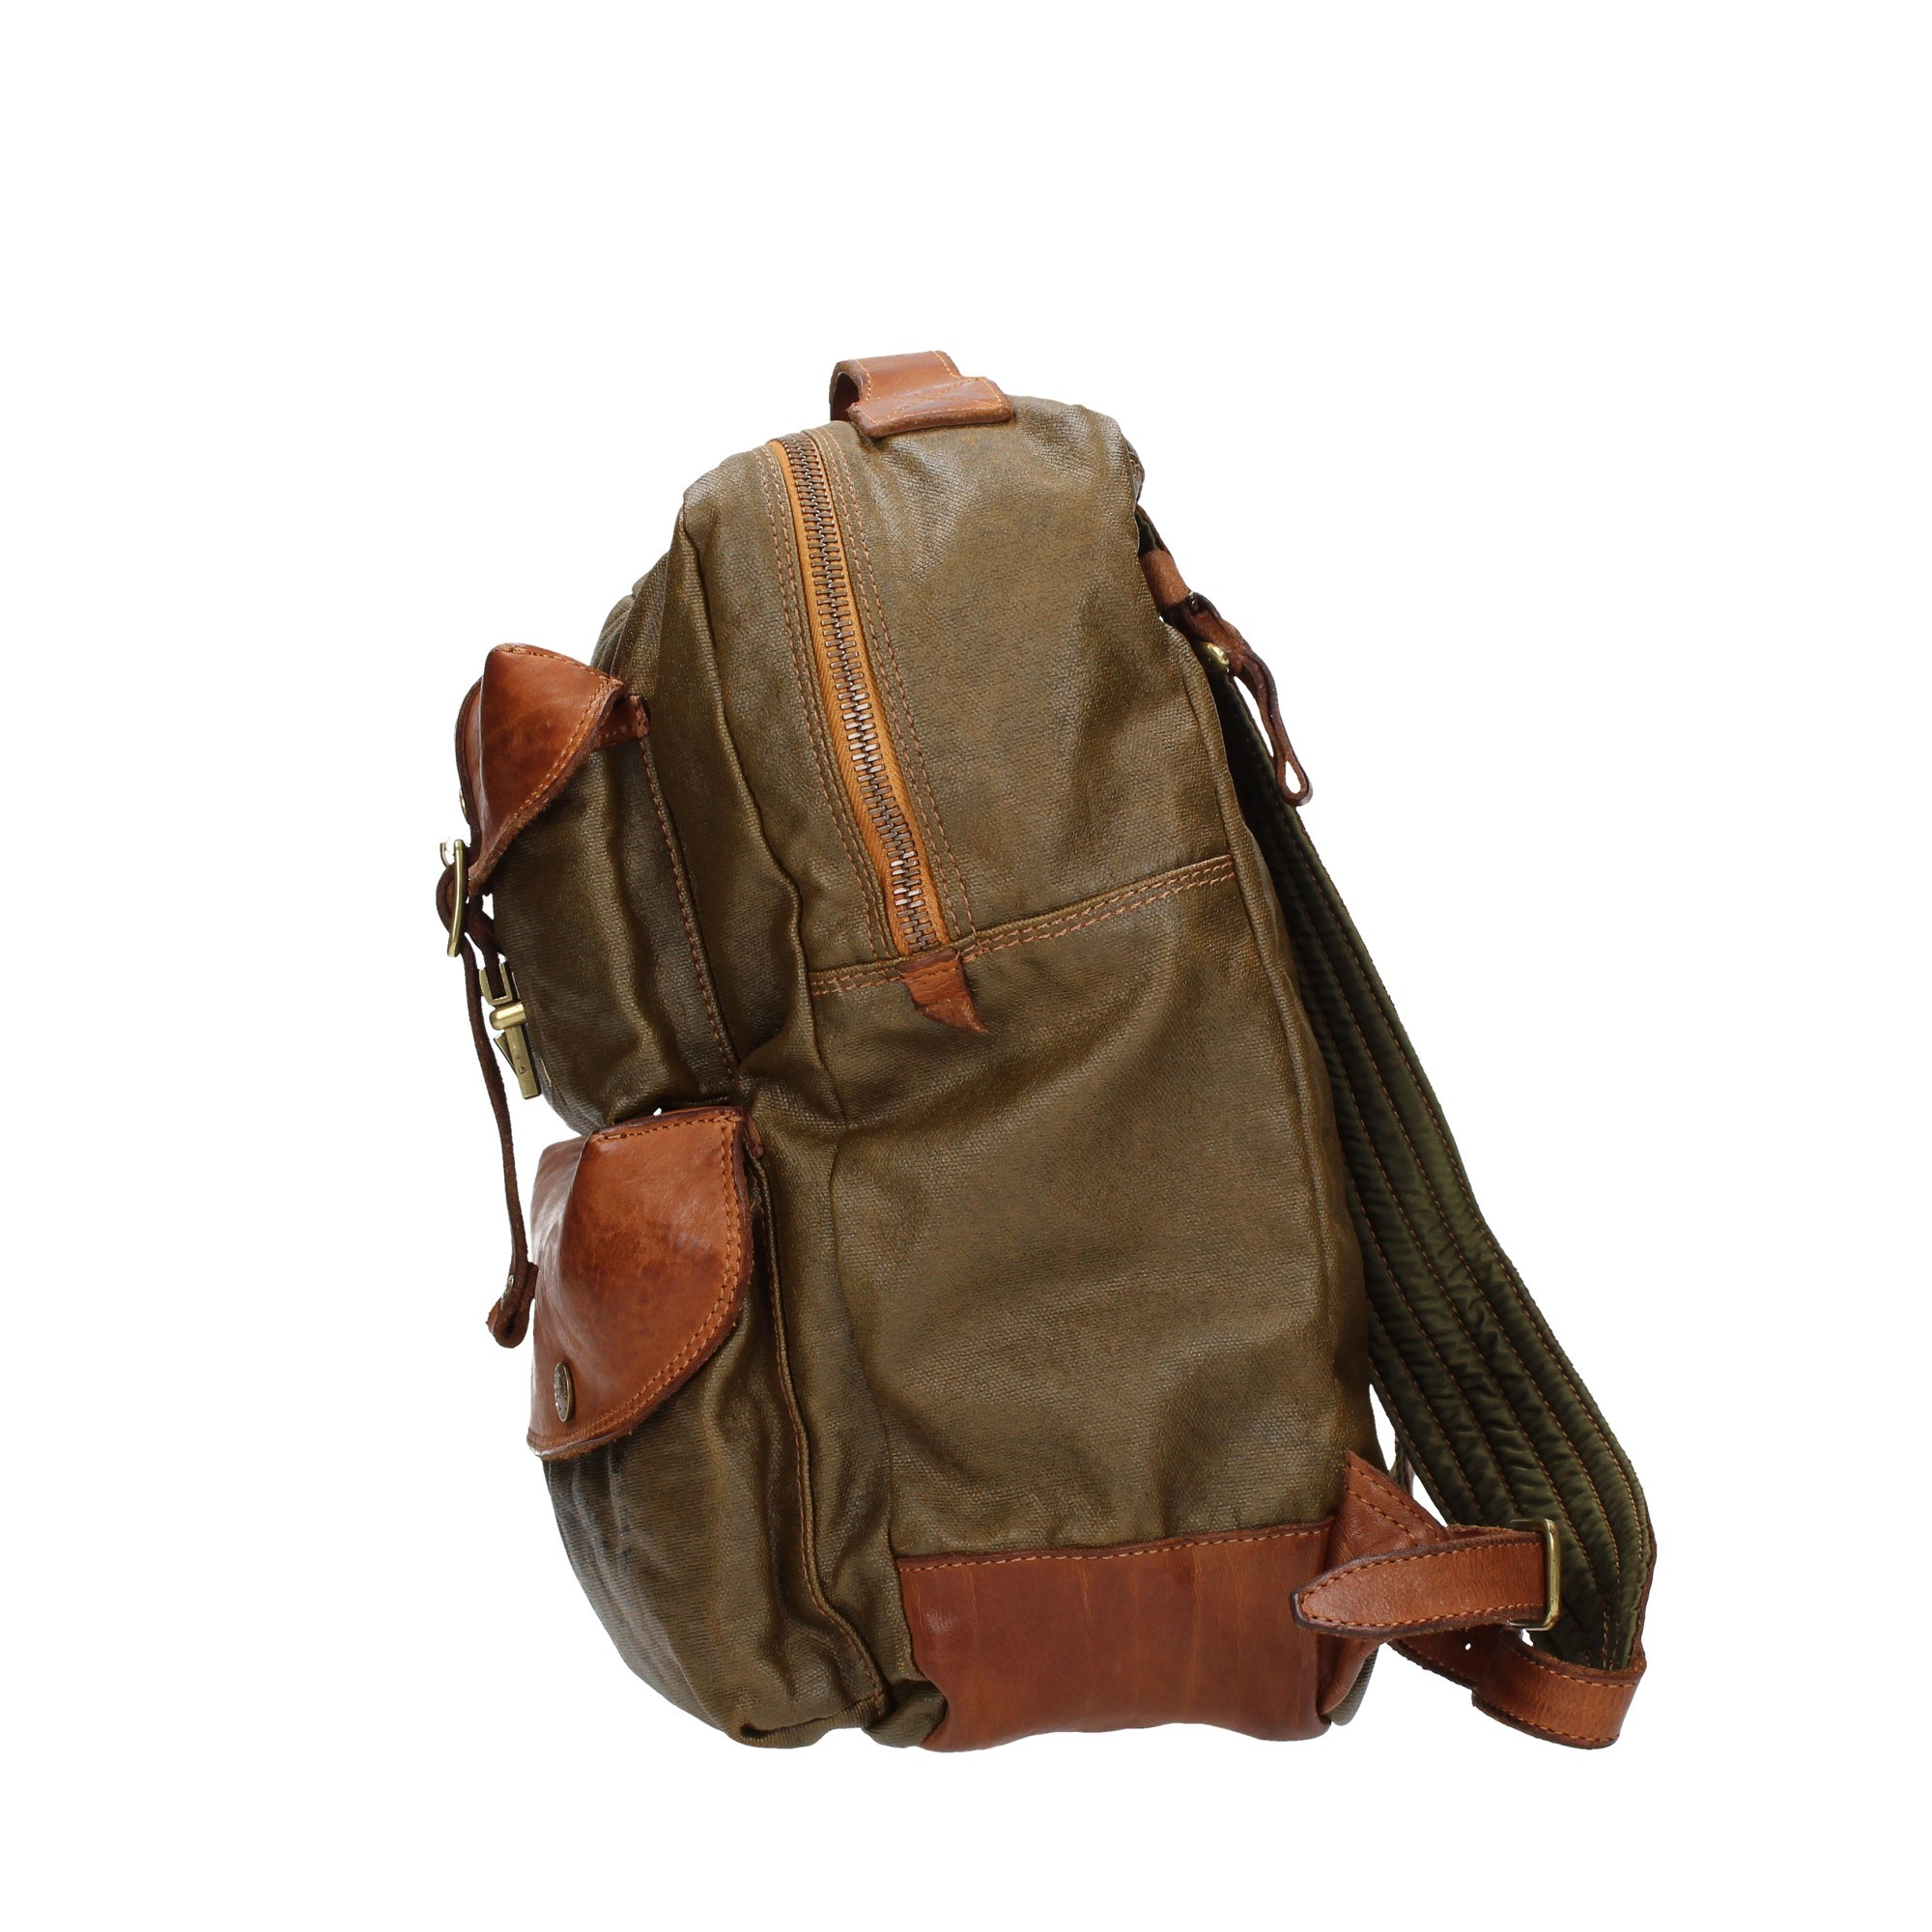 Campomaggi Accessories Man Backpack Leather C025330ND-X1632